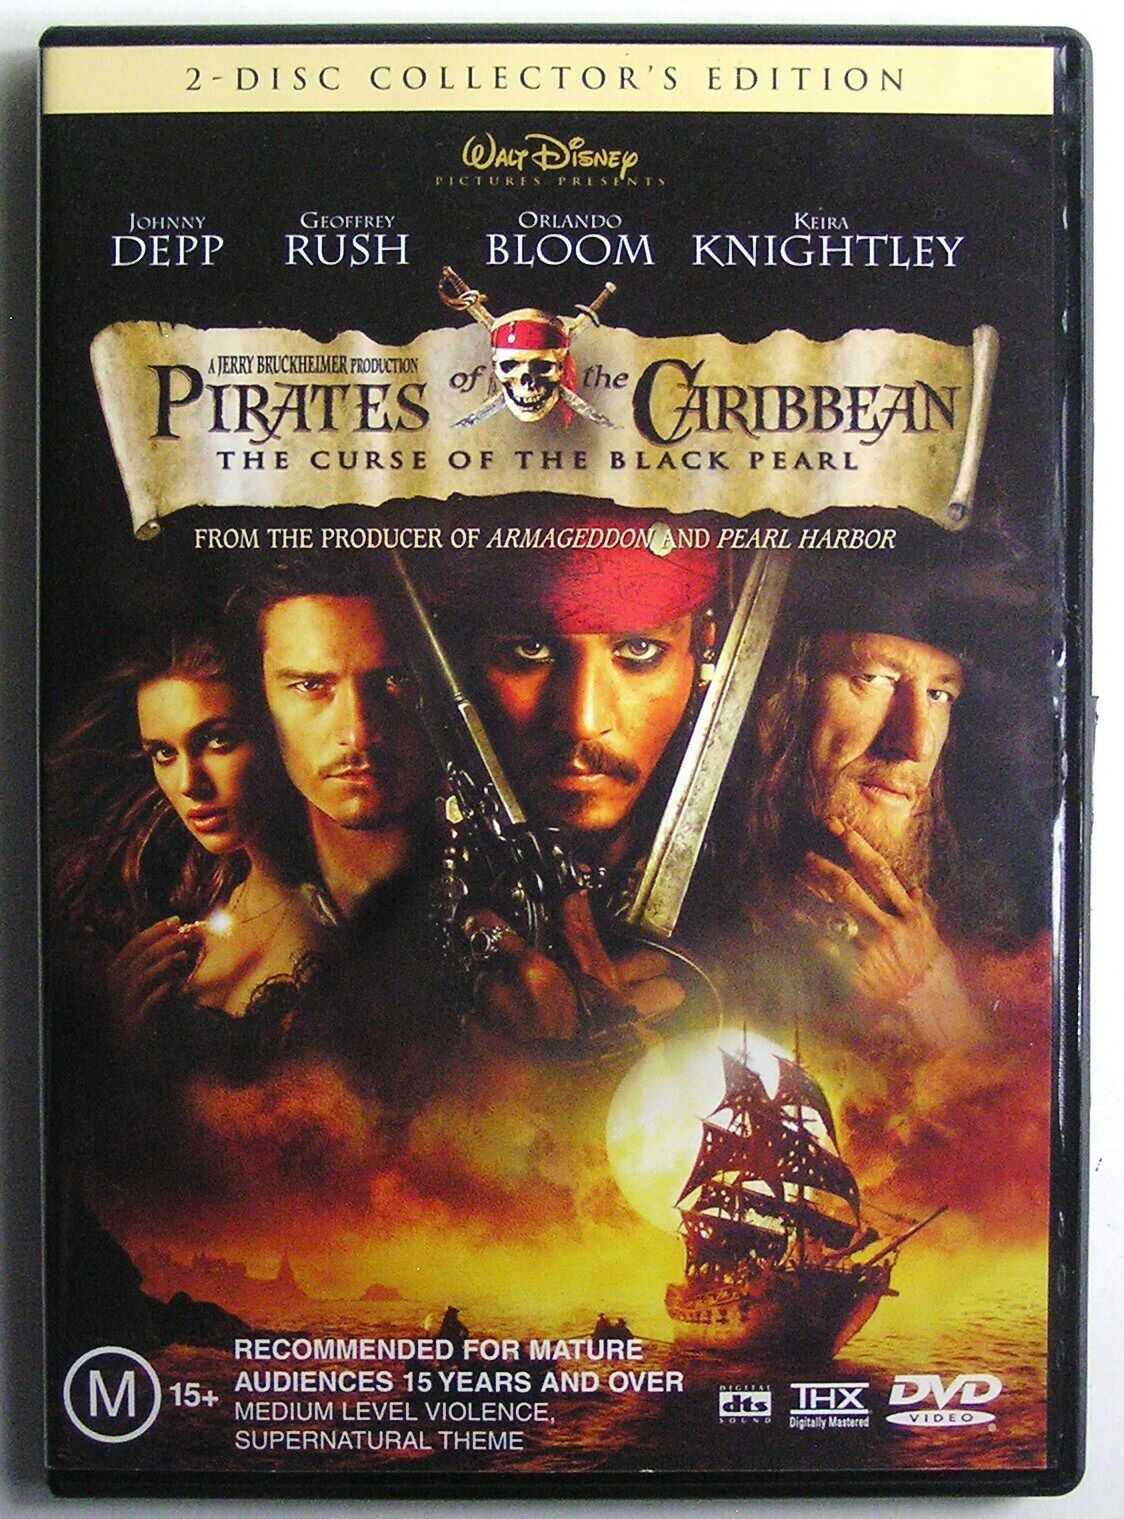 Pirates Of The Caribbean The Curse Of The Black Pearl 2003 Dvd Movie 2 Disc For Sale Online